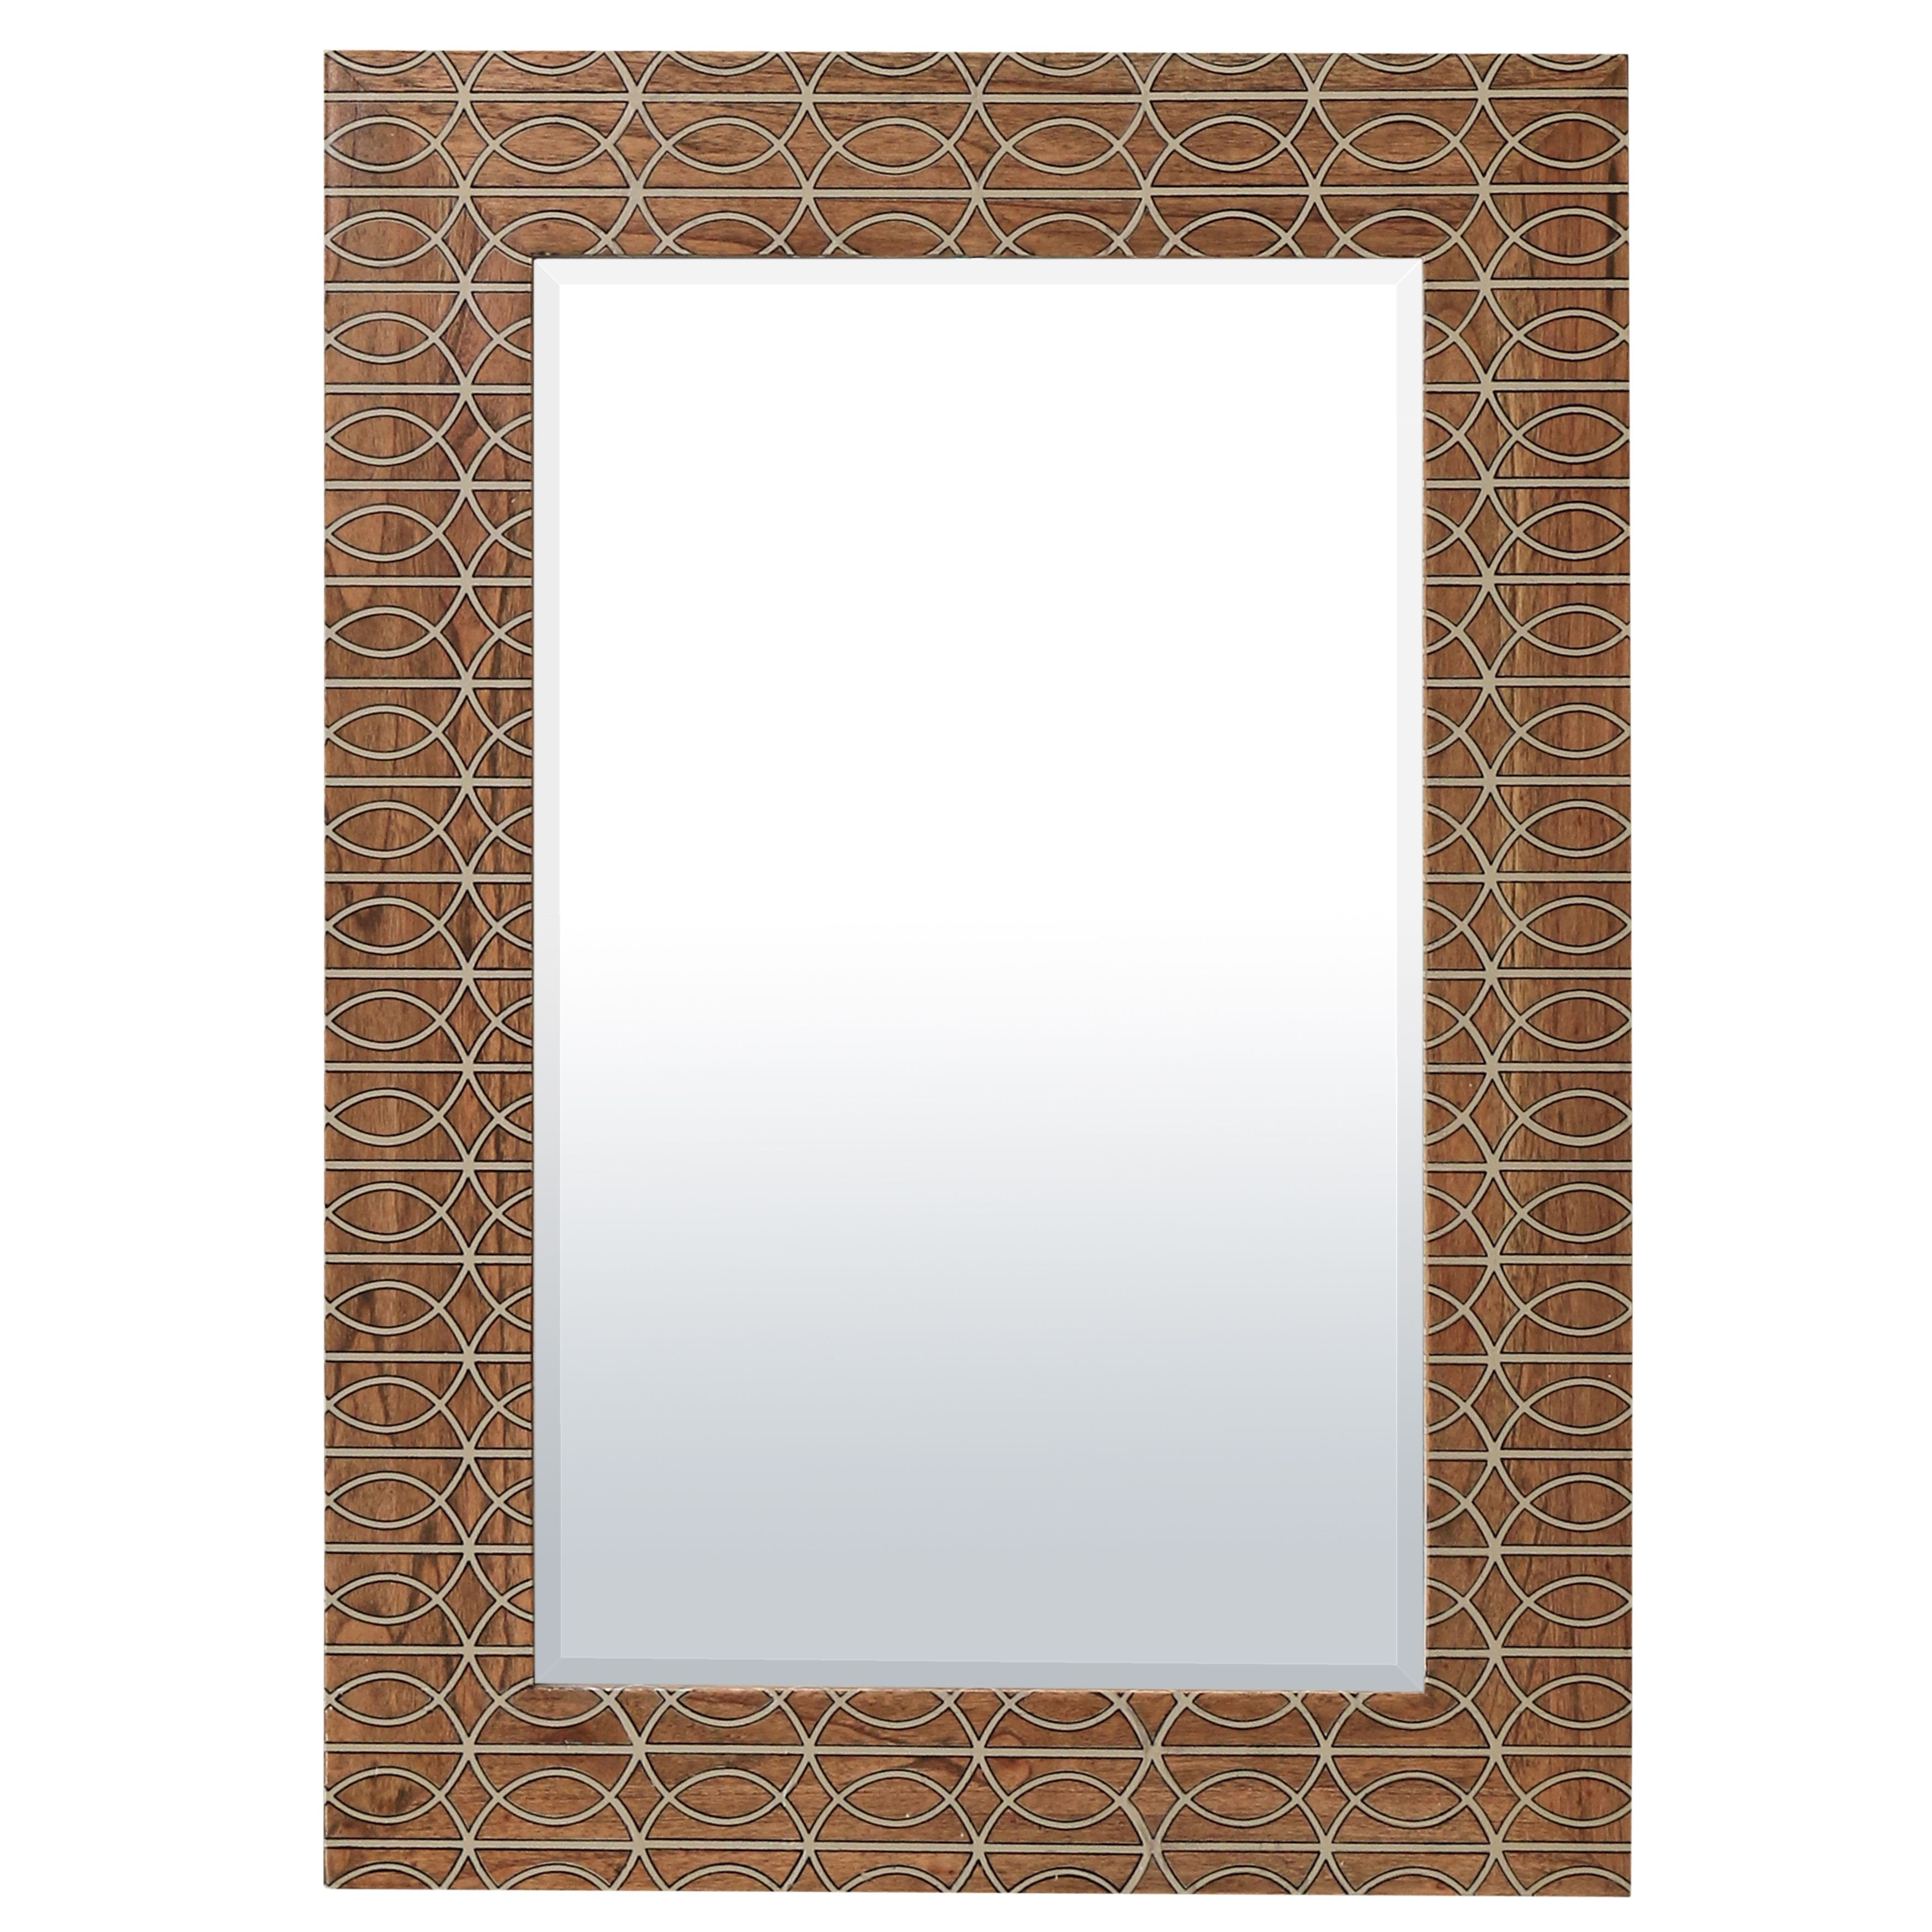 Wood mirror house of fraser for Mirror 60 x 90